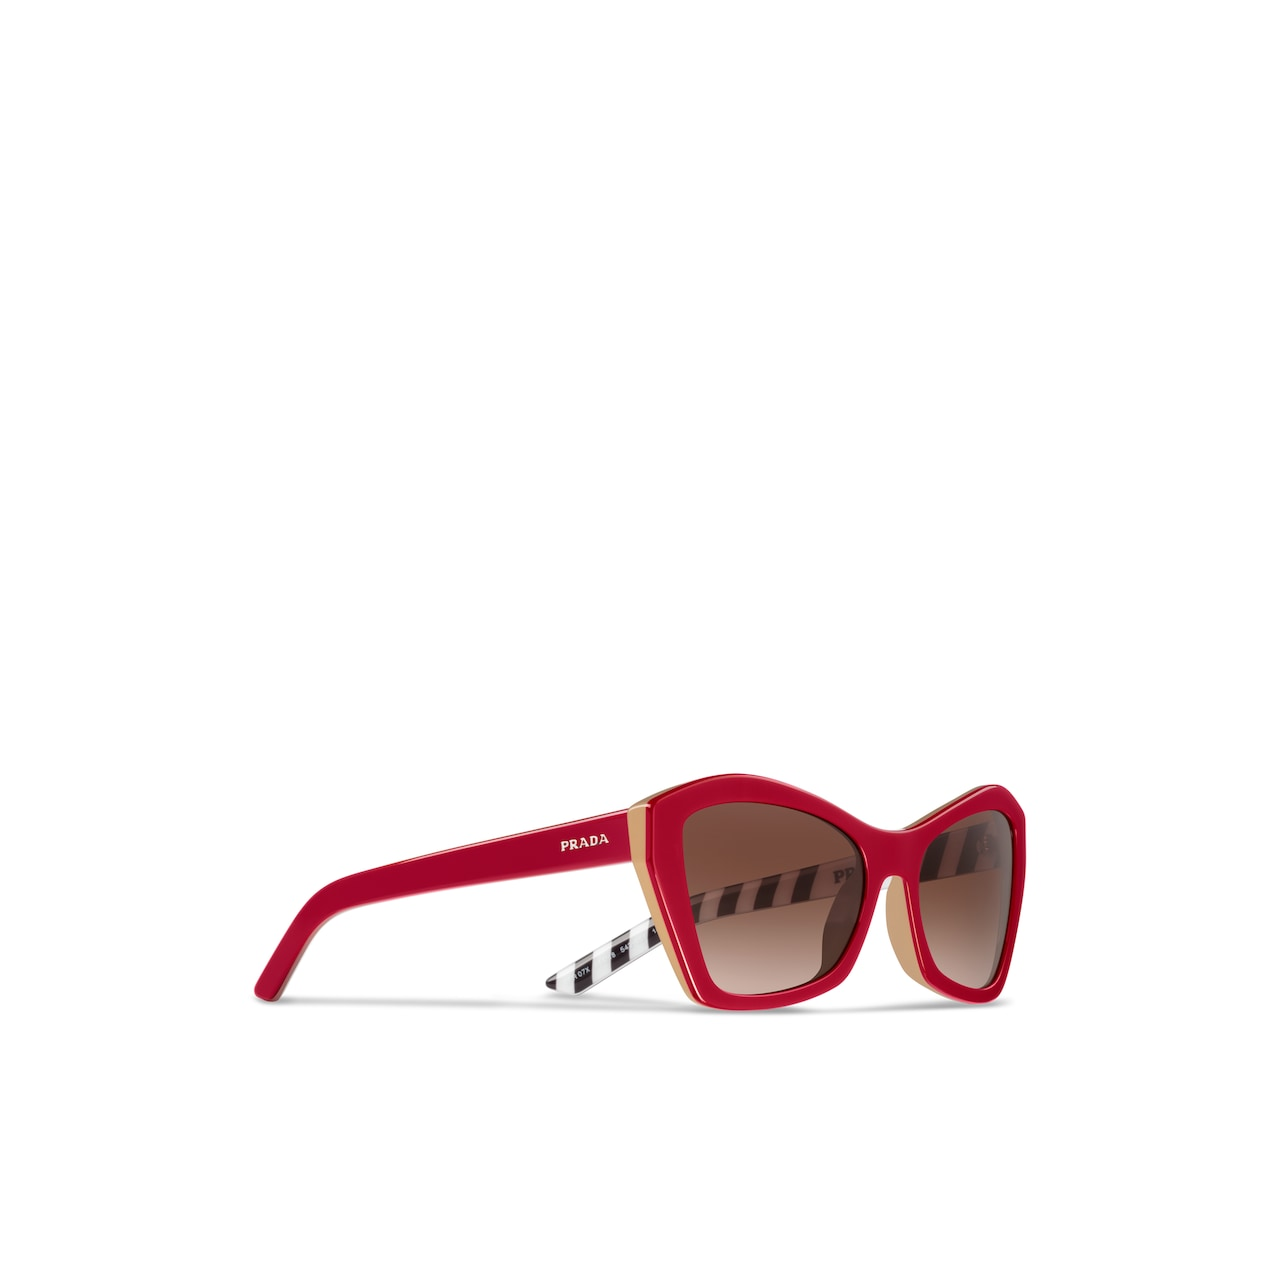 Prada Prada Disguise sunglasses Alternative fit 3